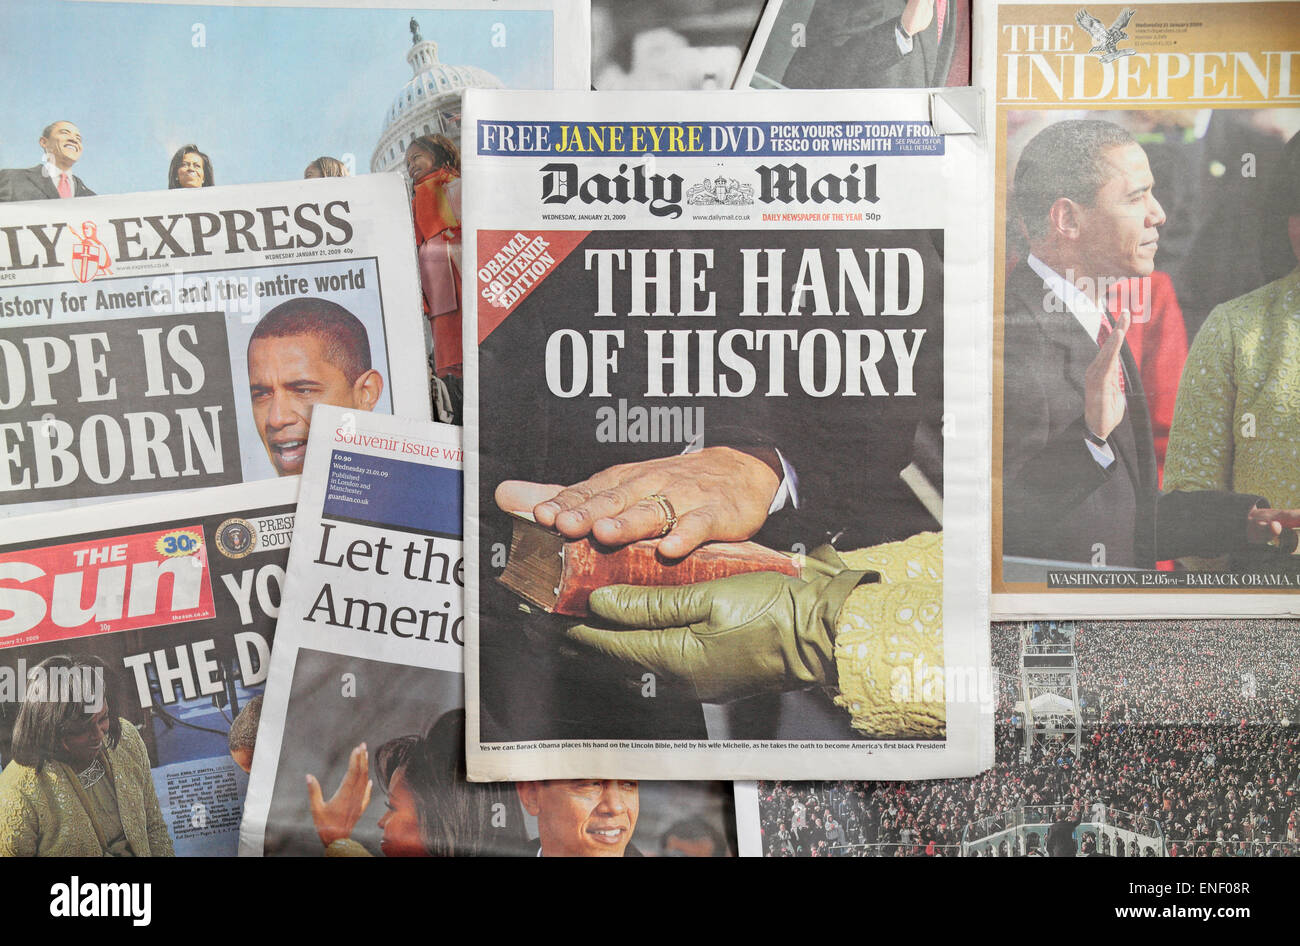 British newspapers following the inauguration of President Barack Obama on 20th January 2009. - Stock Image